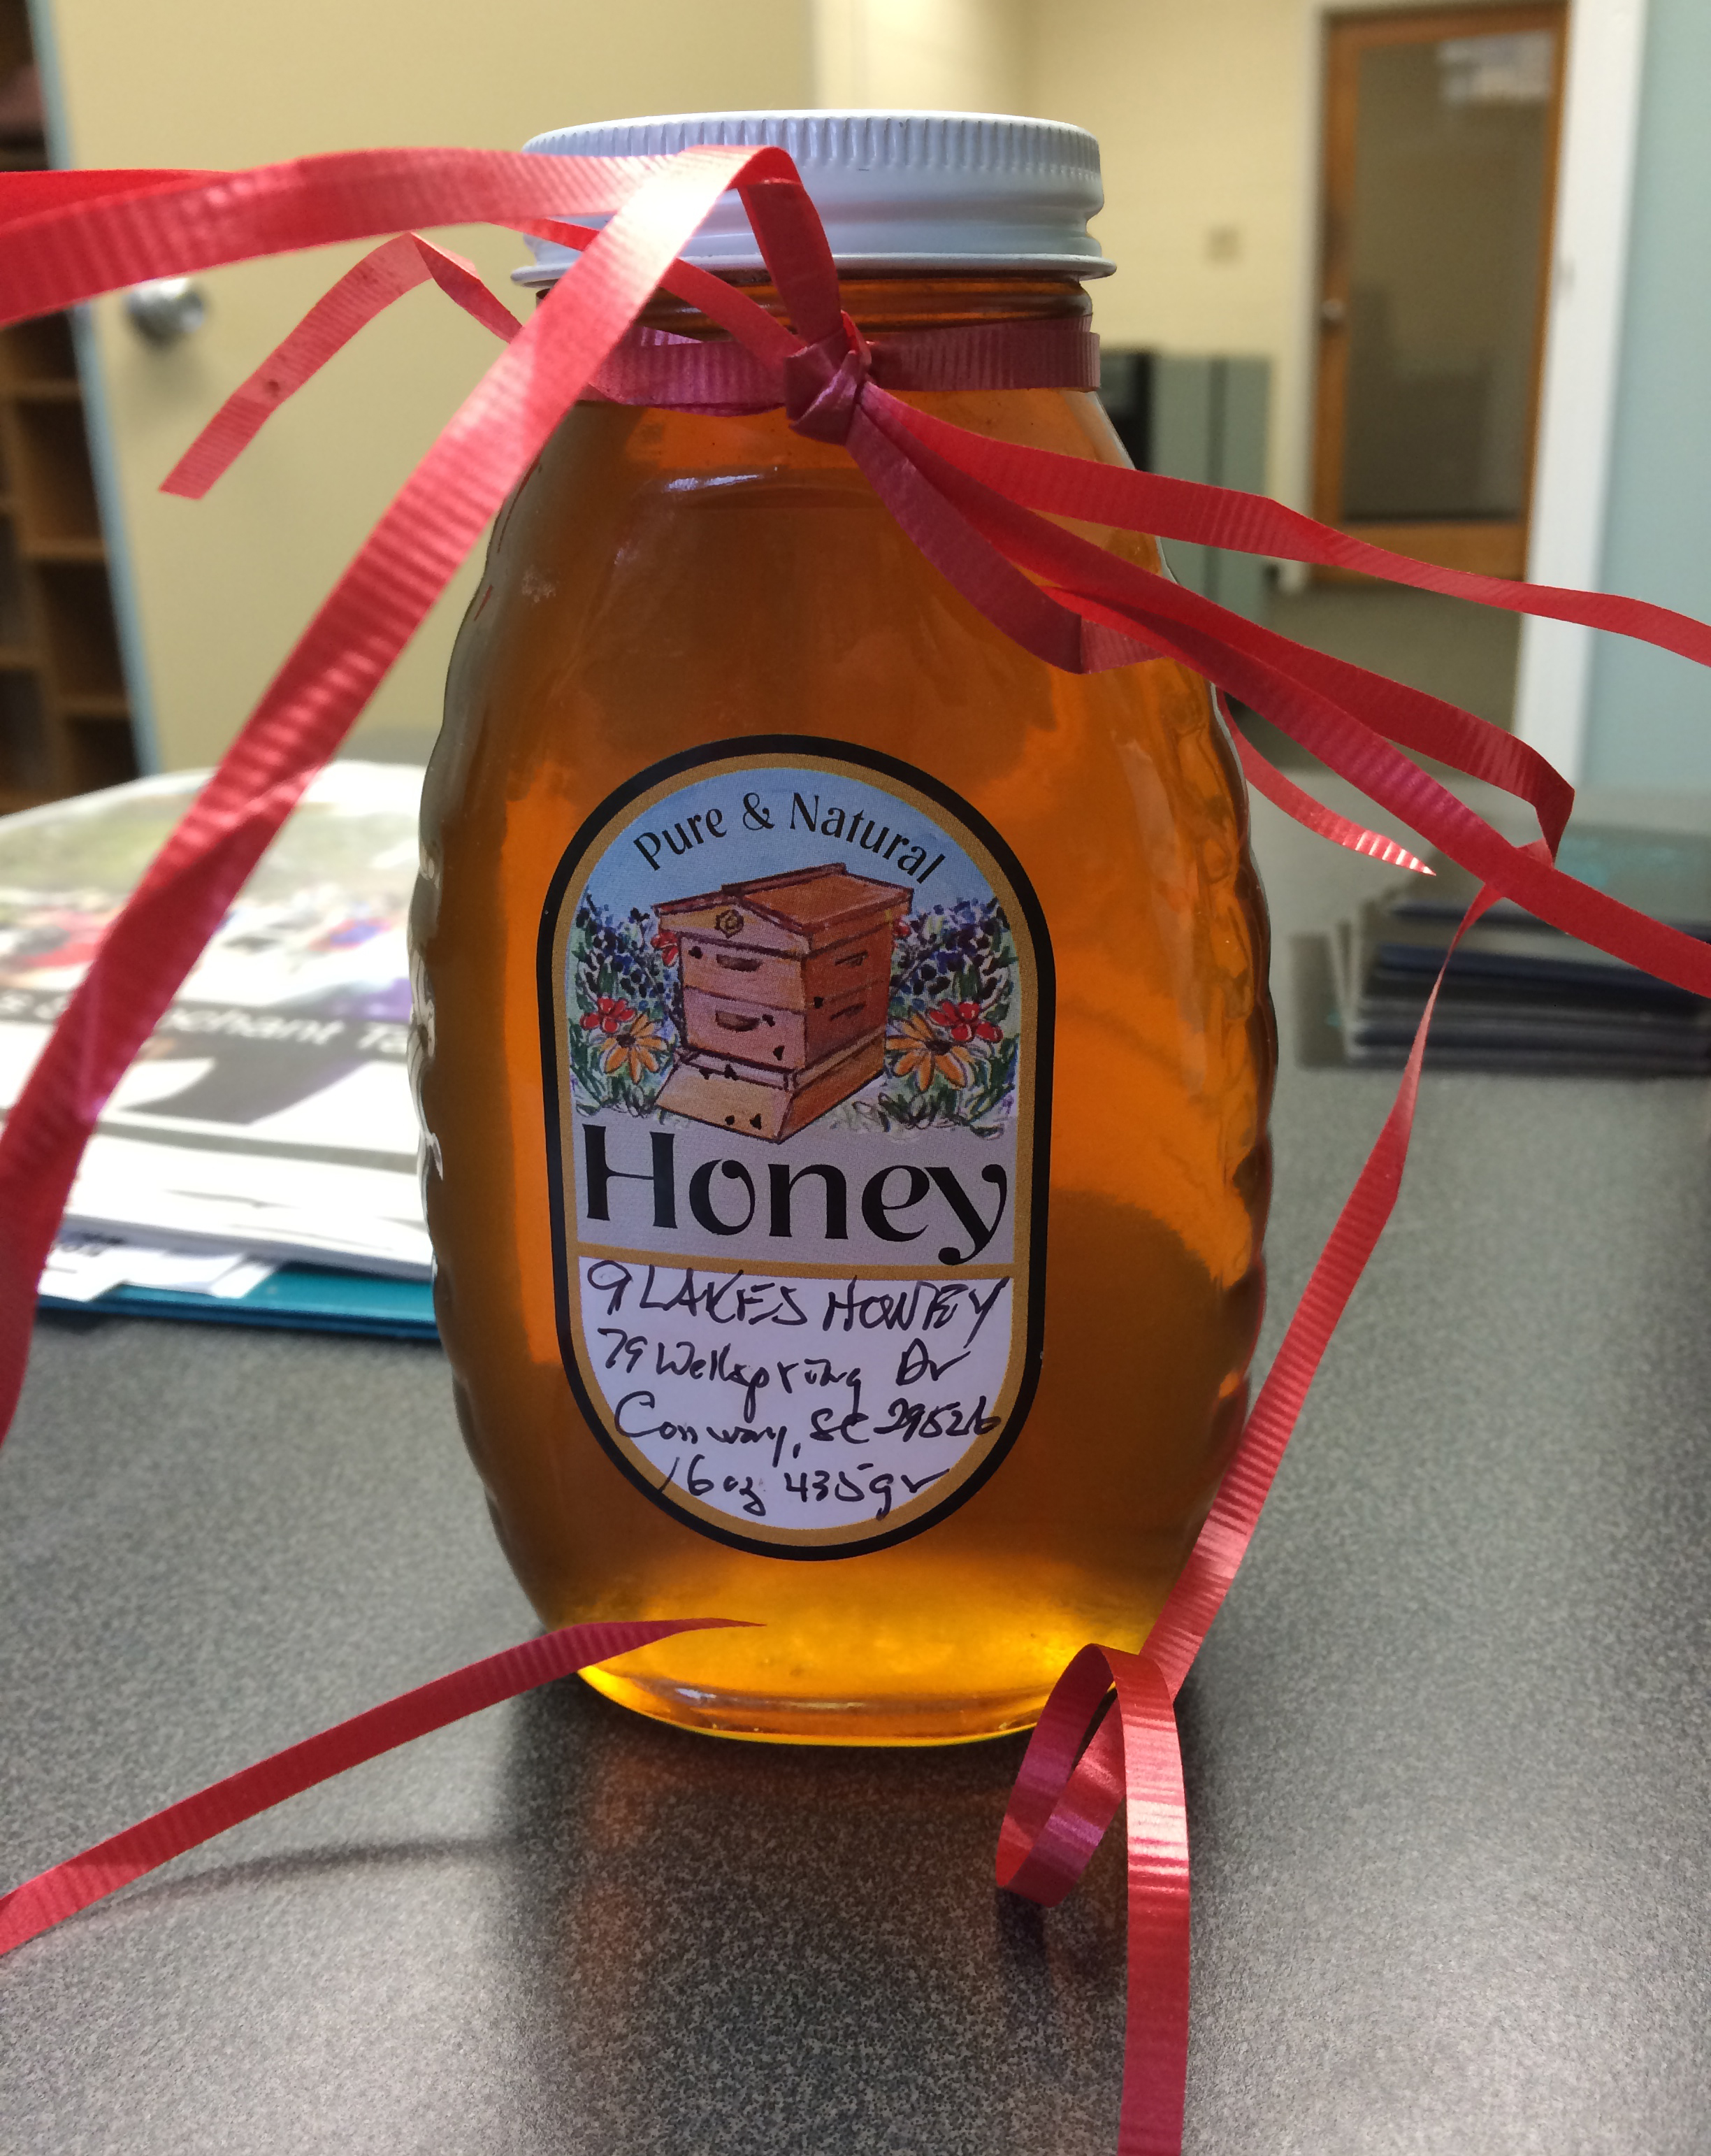 Martha presented me with this jar of 9 Lakes Honey.